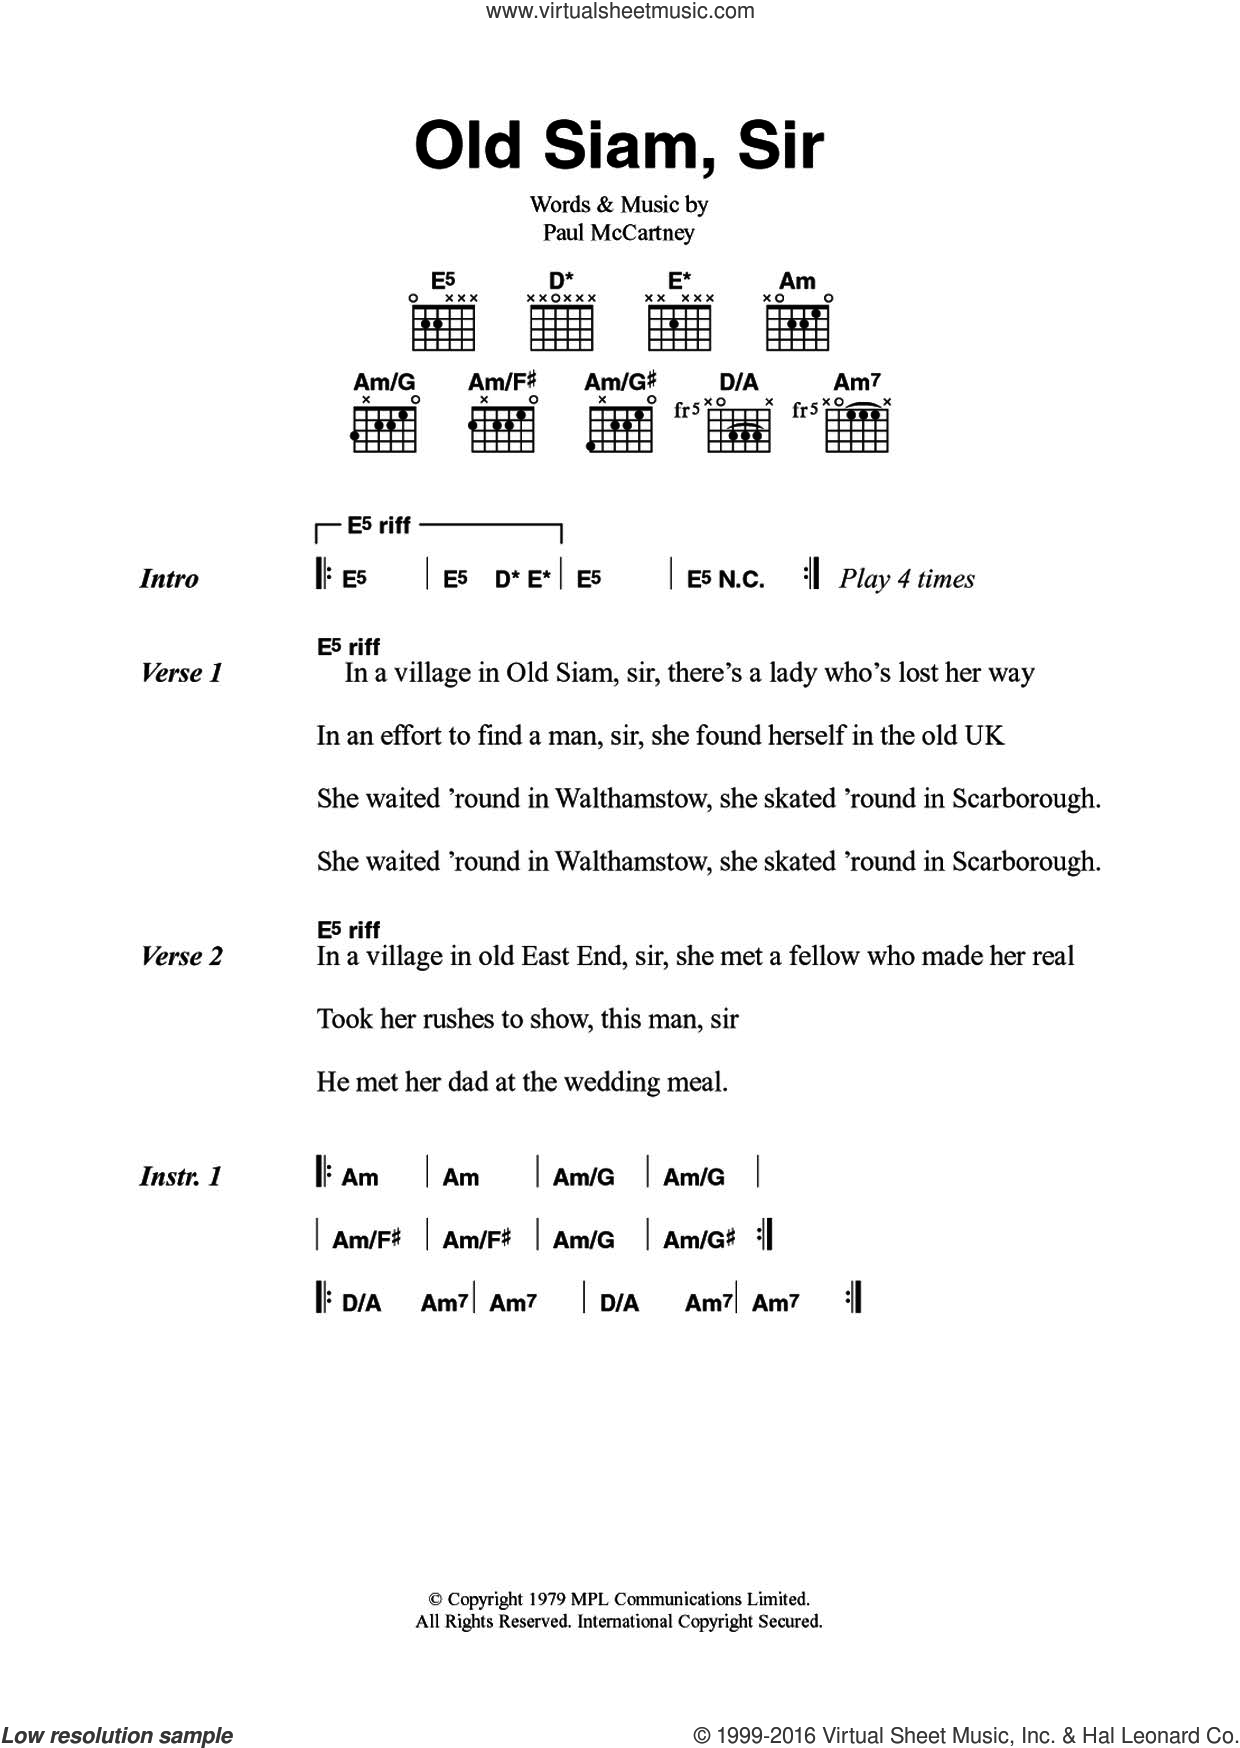 Old Siam, Sir sheet music for guitar (chords) by Wings and Paul McCartney. Score Image Preview.